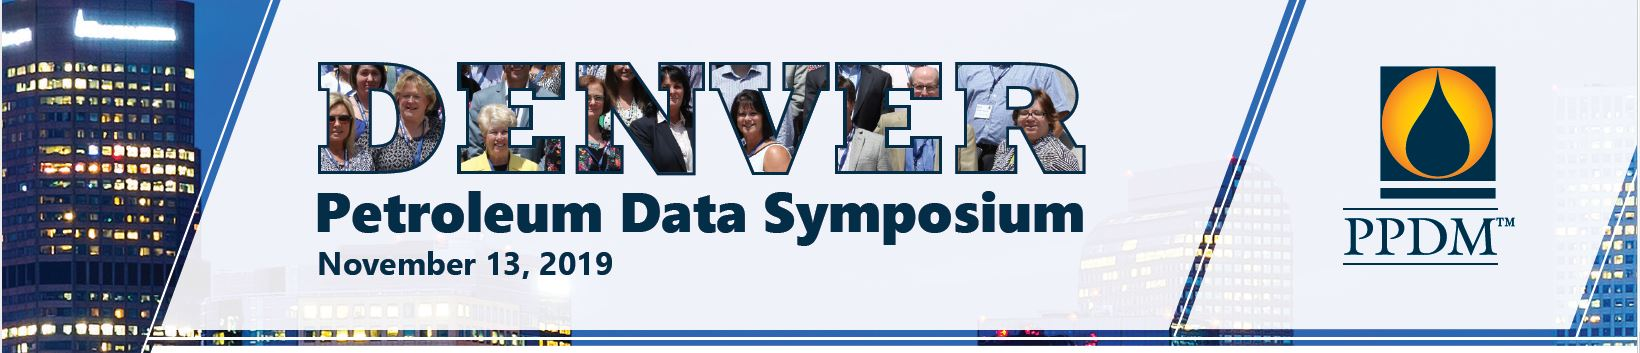 Denver Petroleum Data Symposium 2019